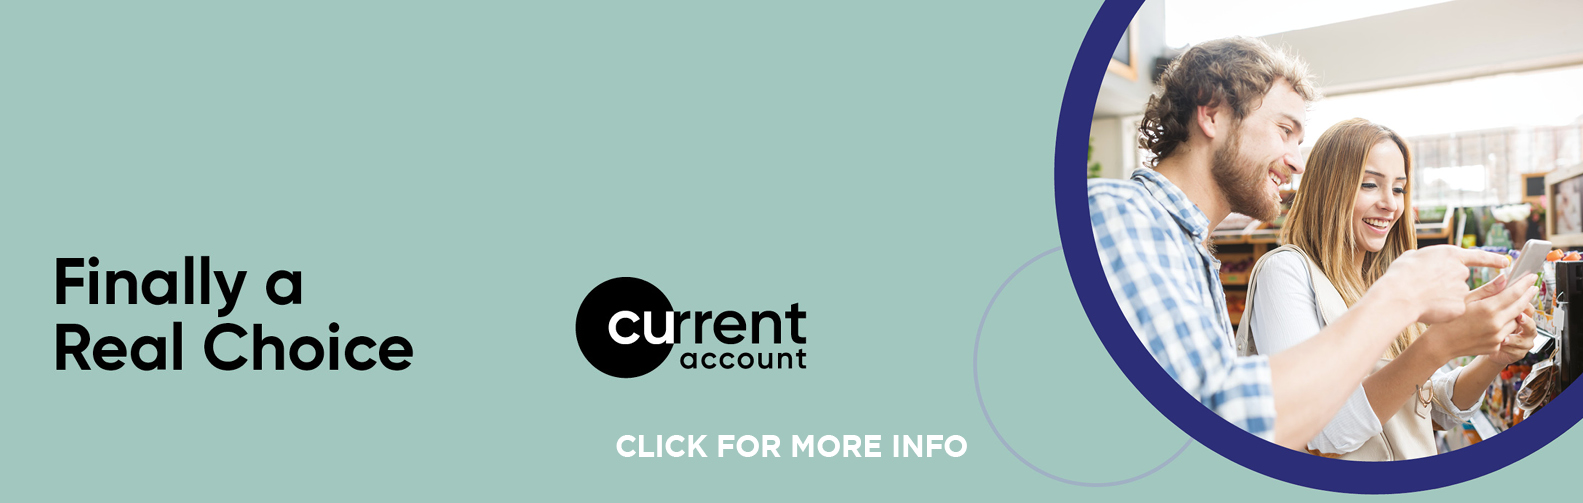 current-account-sliders-1119_2